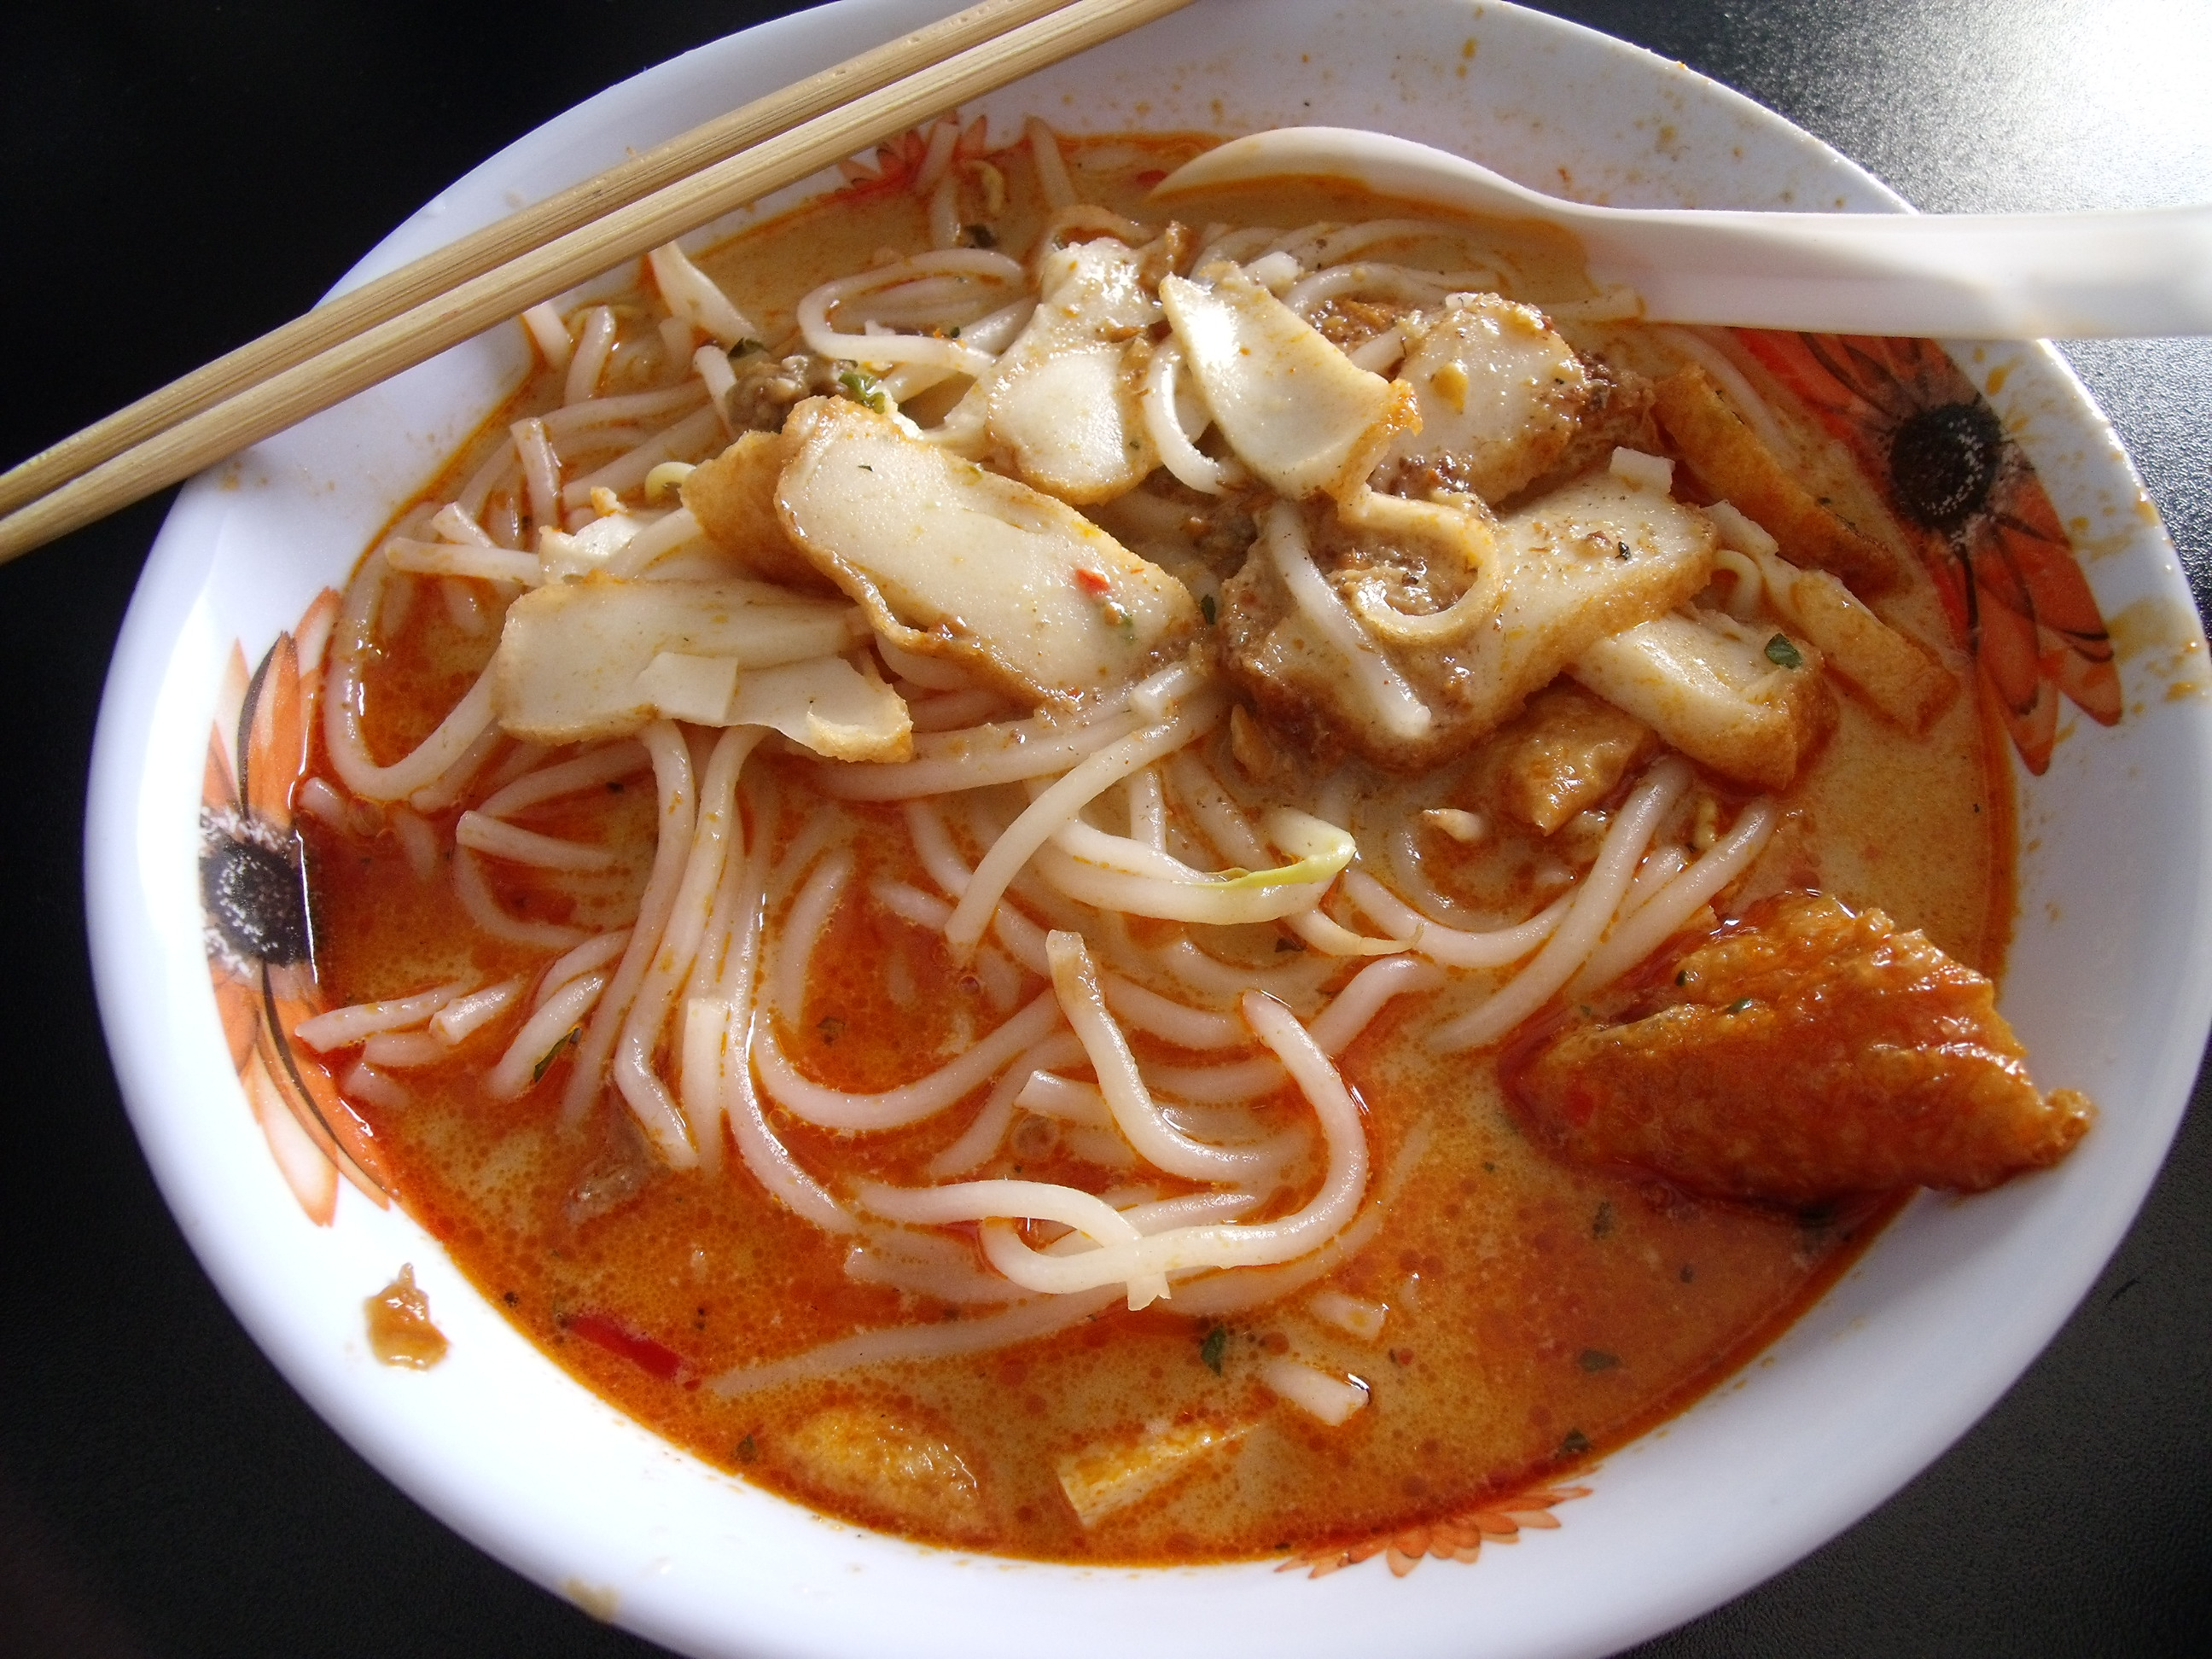 File:Laksa.JPG - Wikipedia, the free encyclopedia